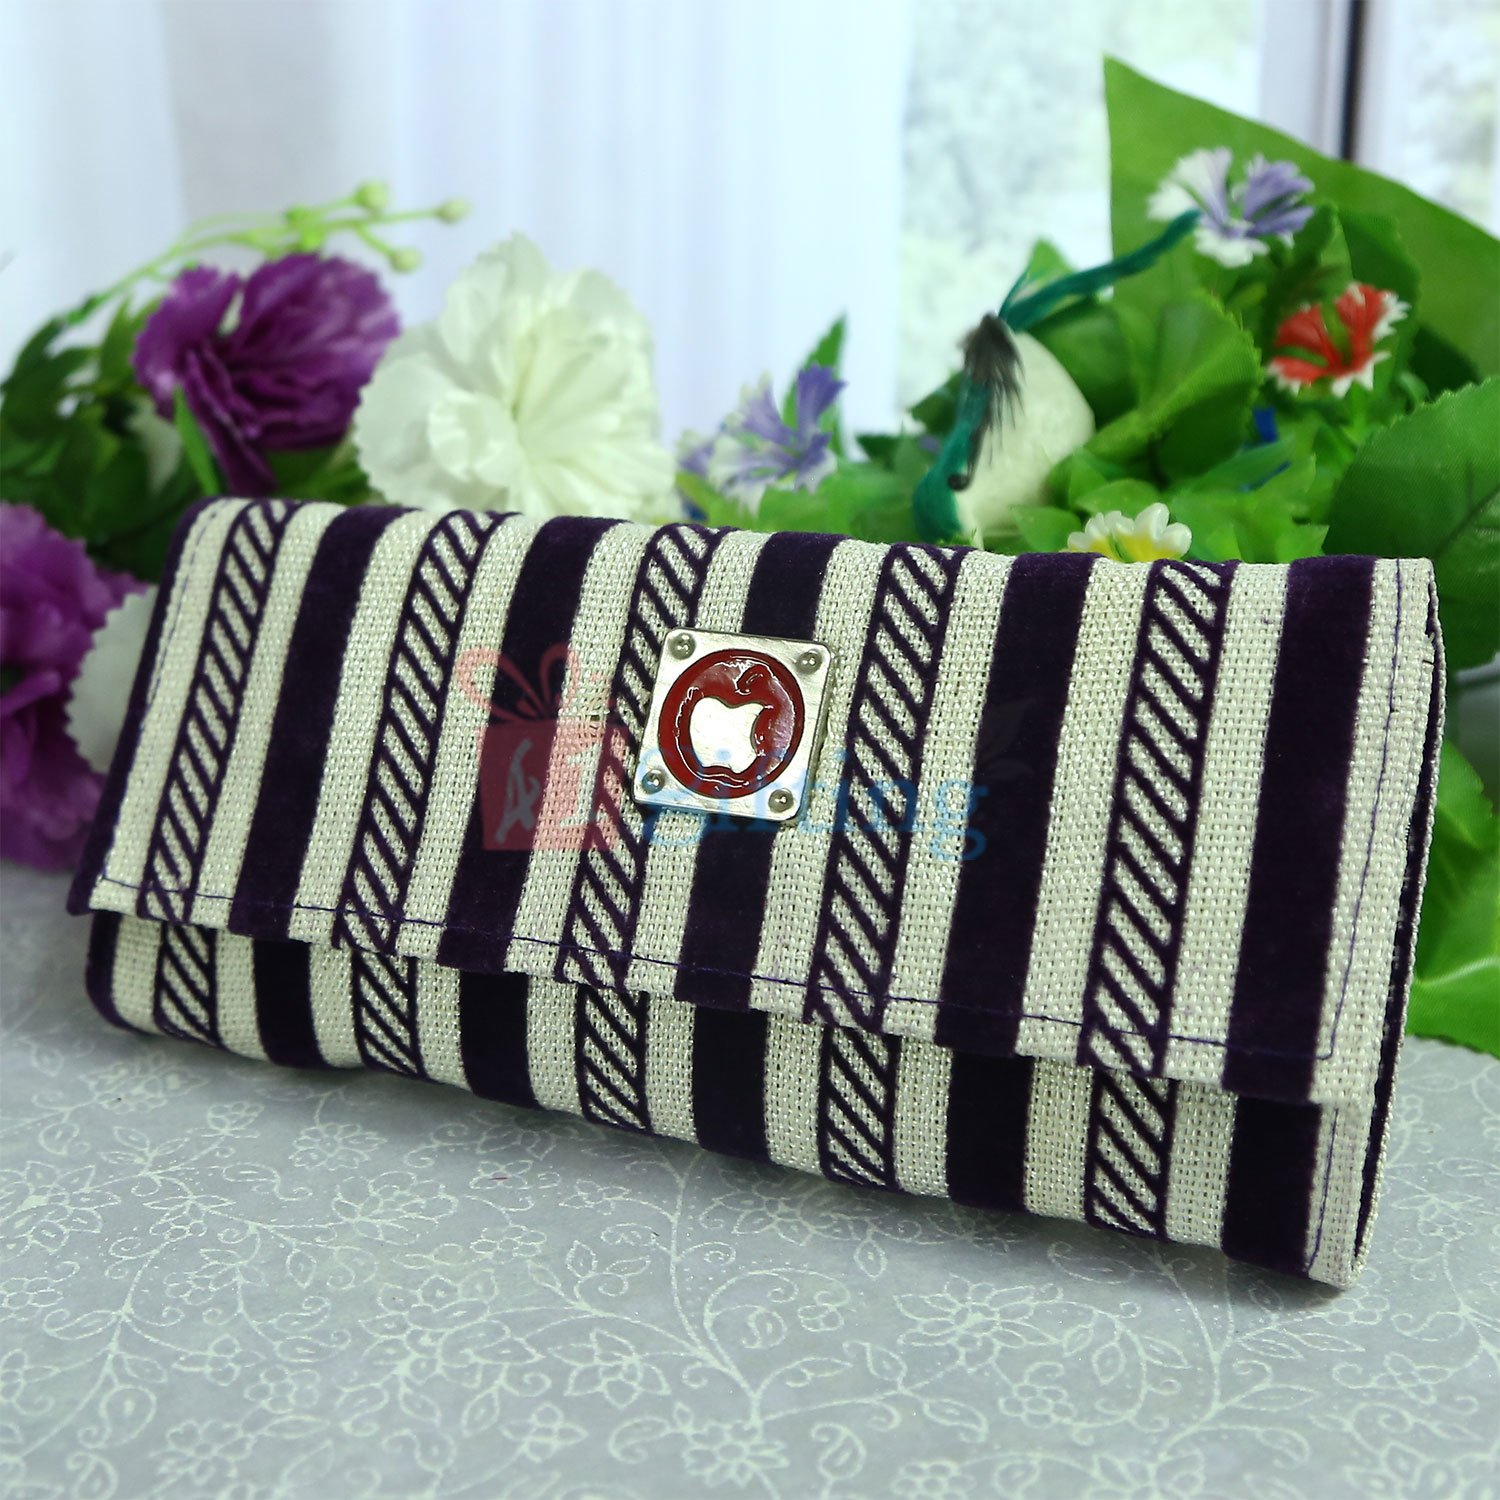 Linner Apple Clutches Gift